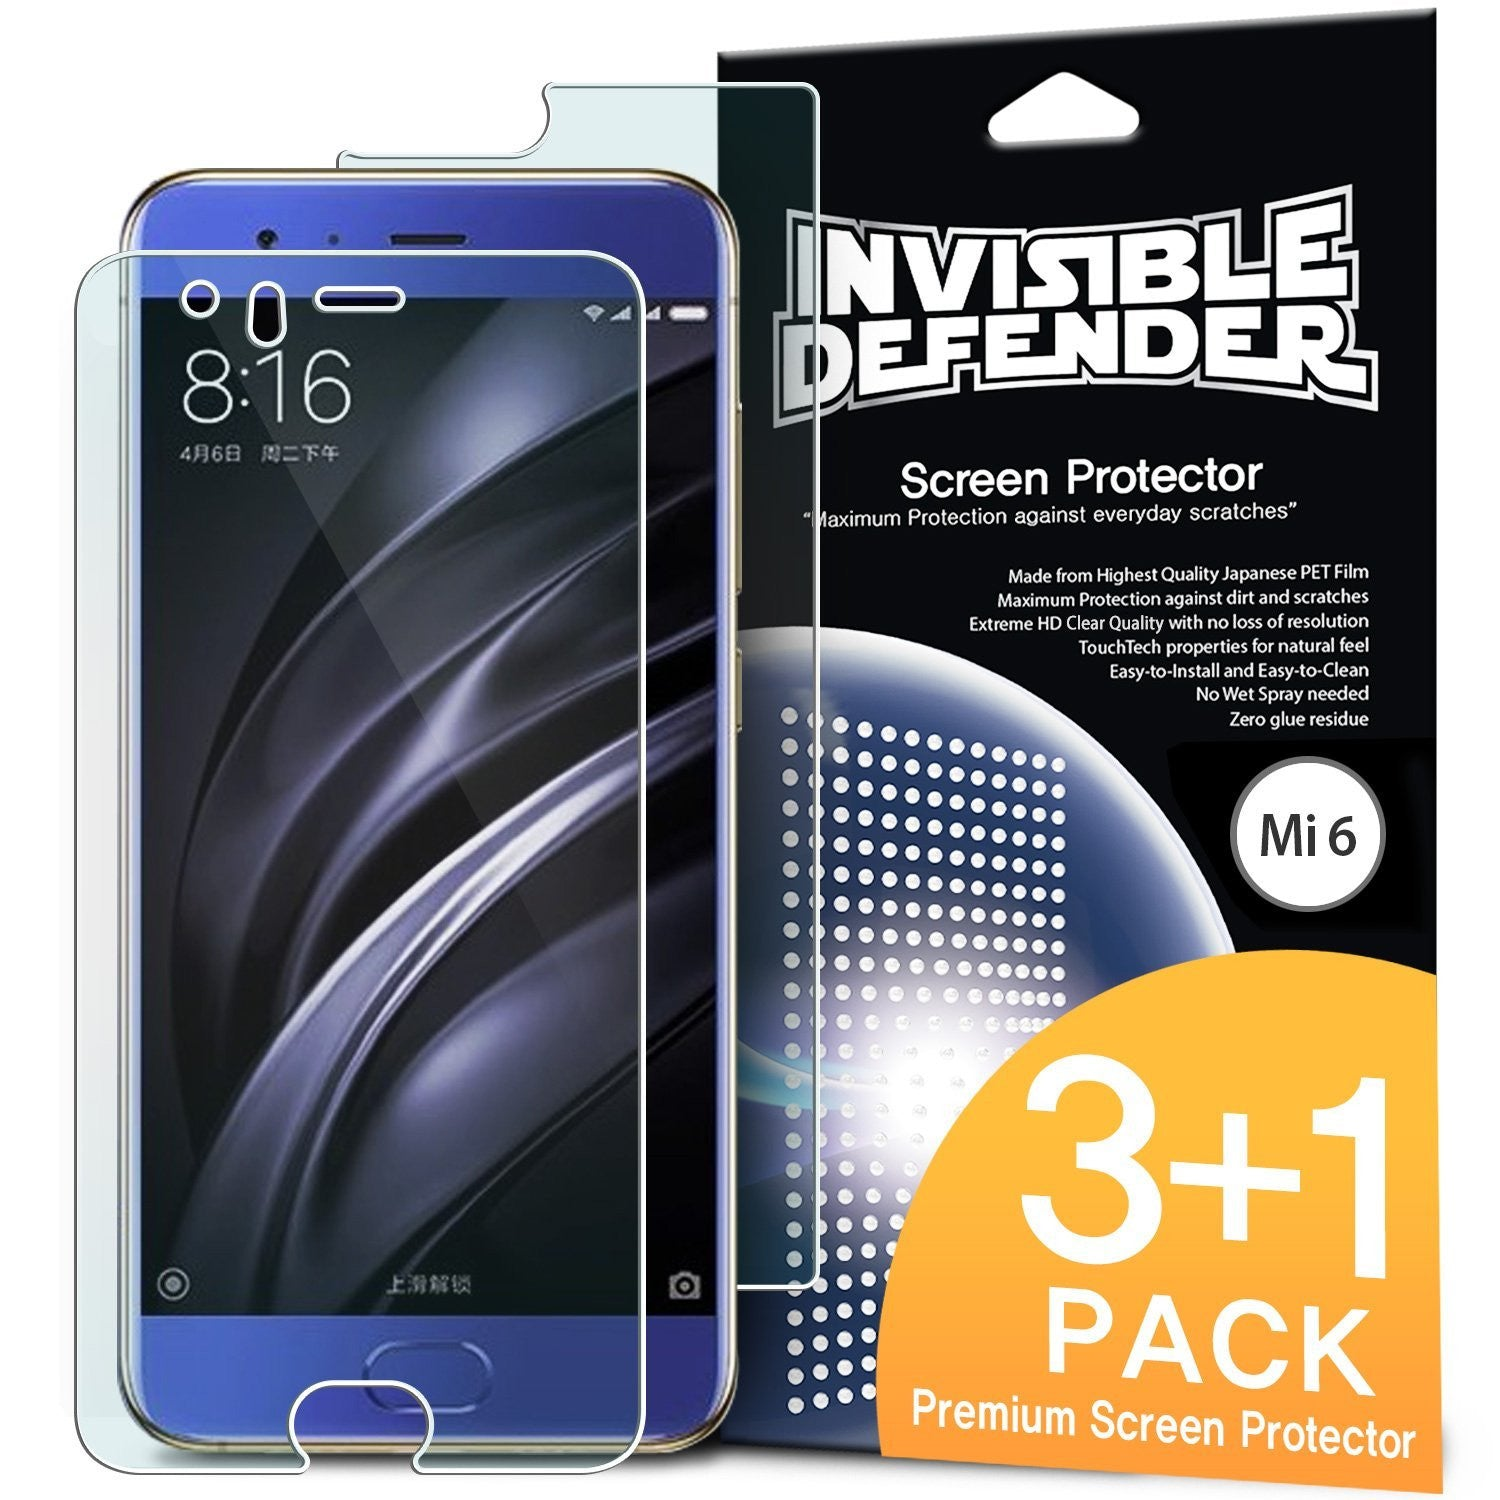 xiaomi mi6 ringke invisible defender 4 pack hd clearness screen protector